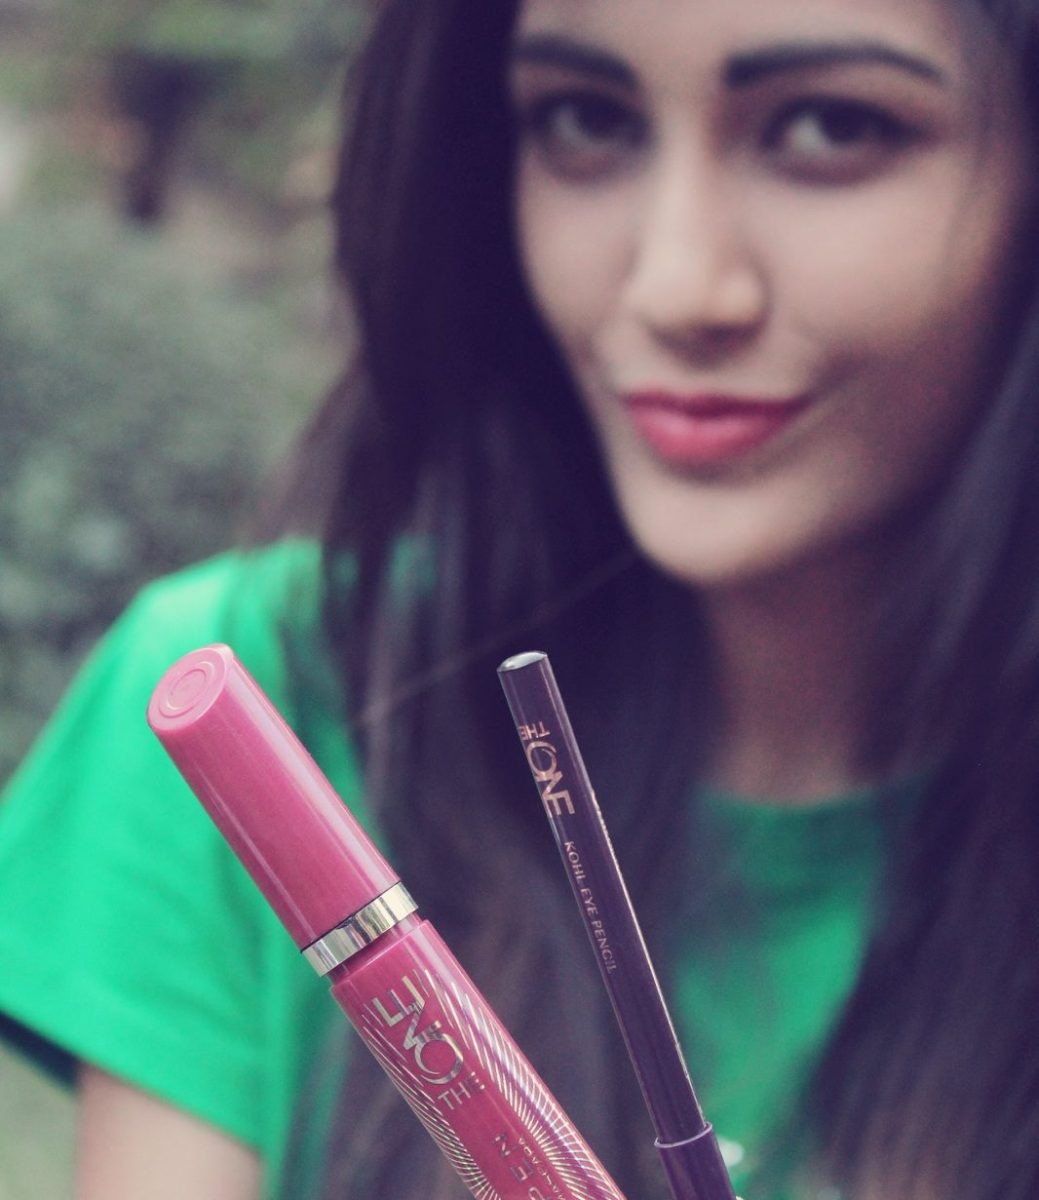 REVIEW: Oriflame - The ONE Range Kohl Eye Pencil & Eyes Wide Open Mascara